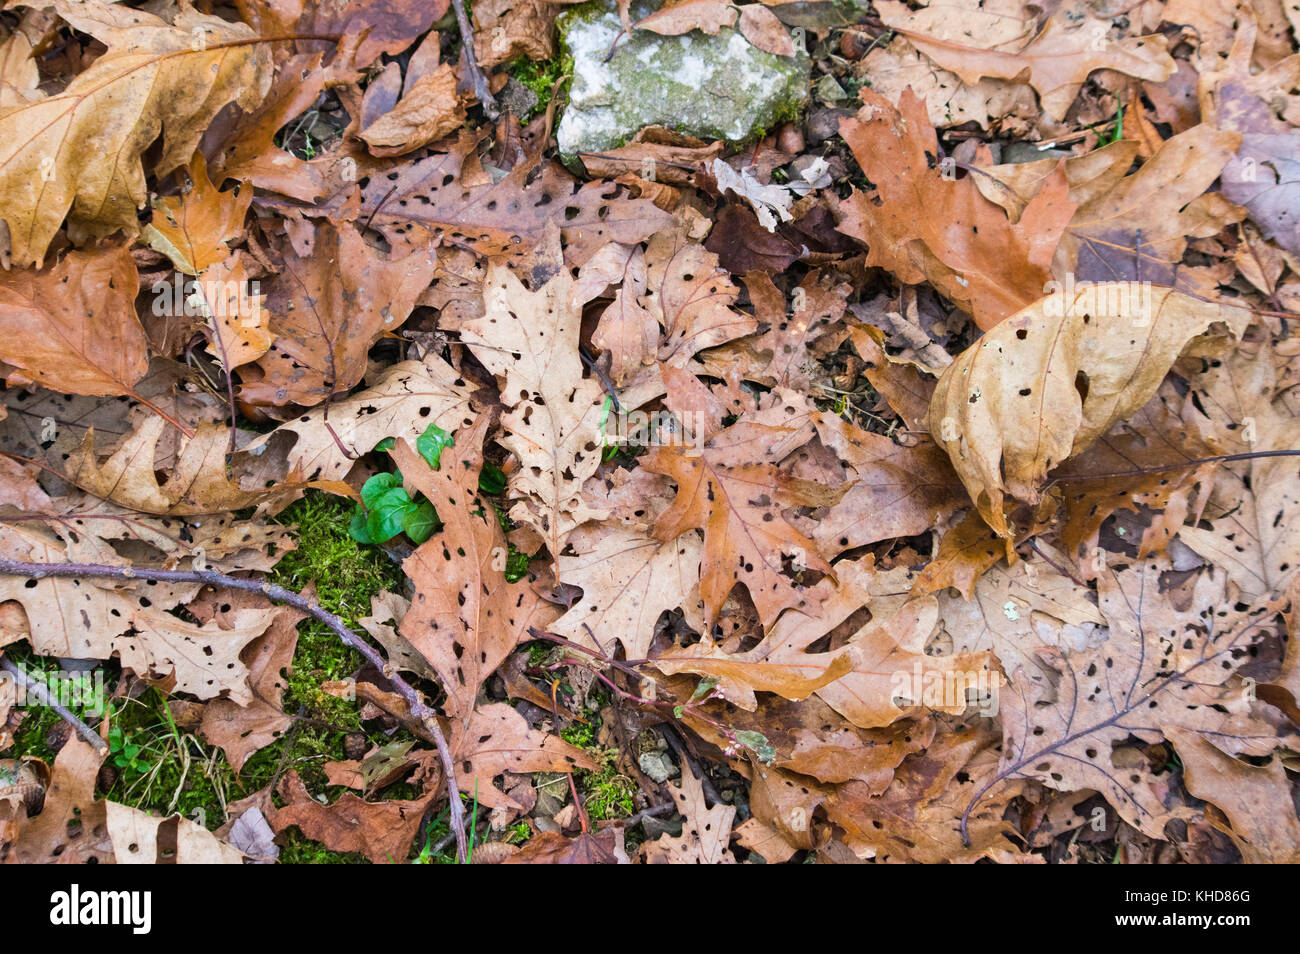 The leaves on the forest floor of Shenandoah National Park in Virginia are marked with holes indicating acid rain - Stock Image